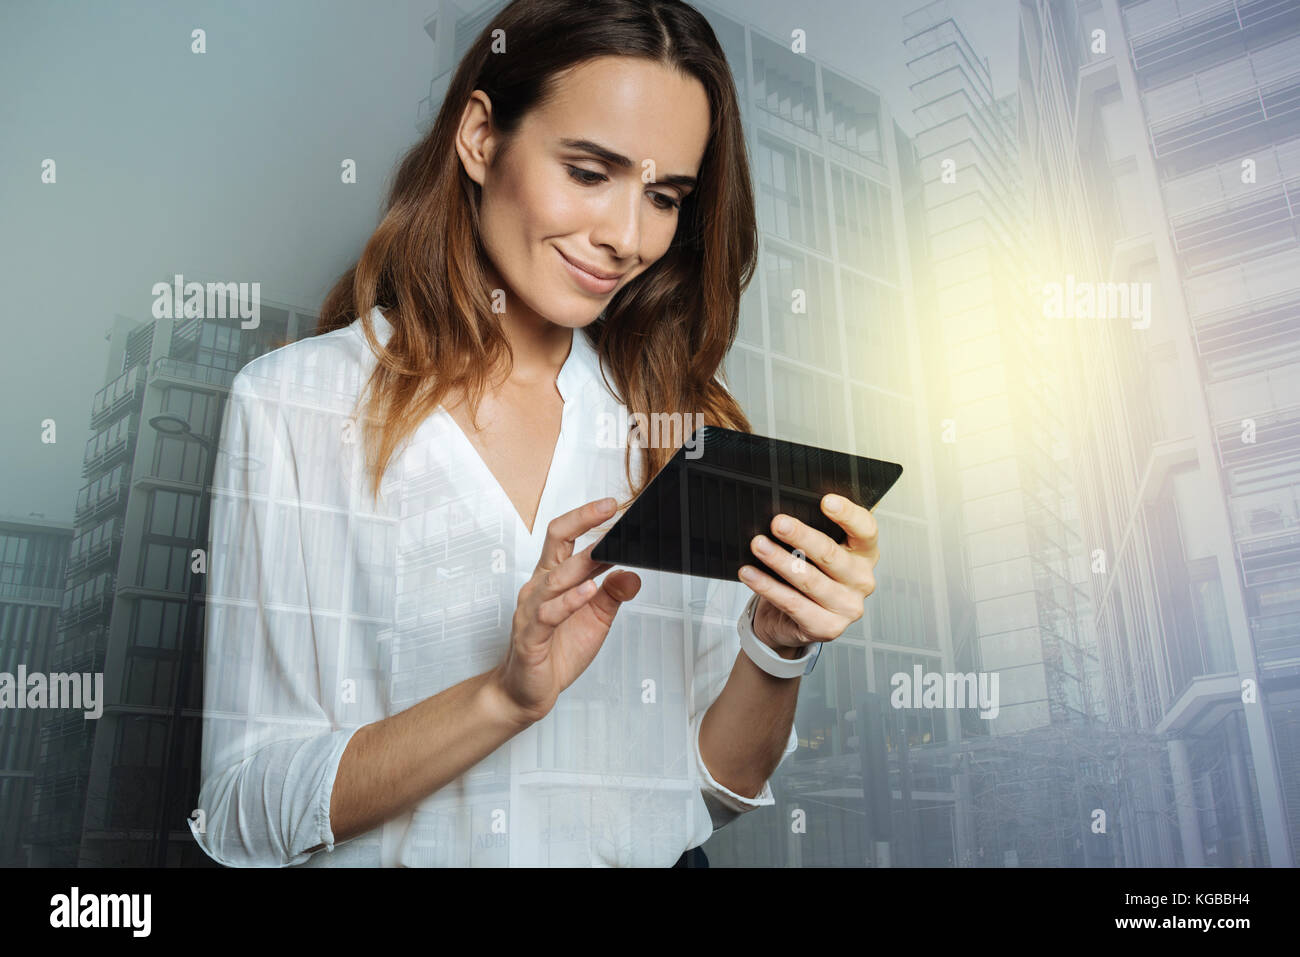 Cheerful pleasant woman browsing the Internet - Stock Image